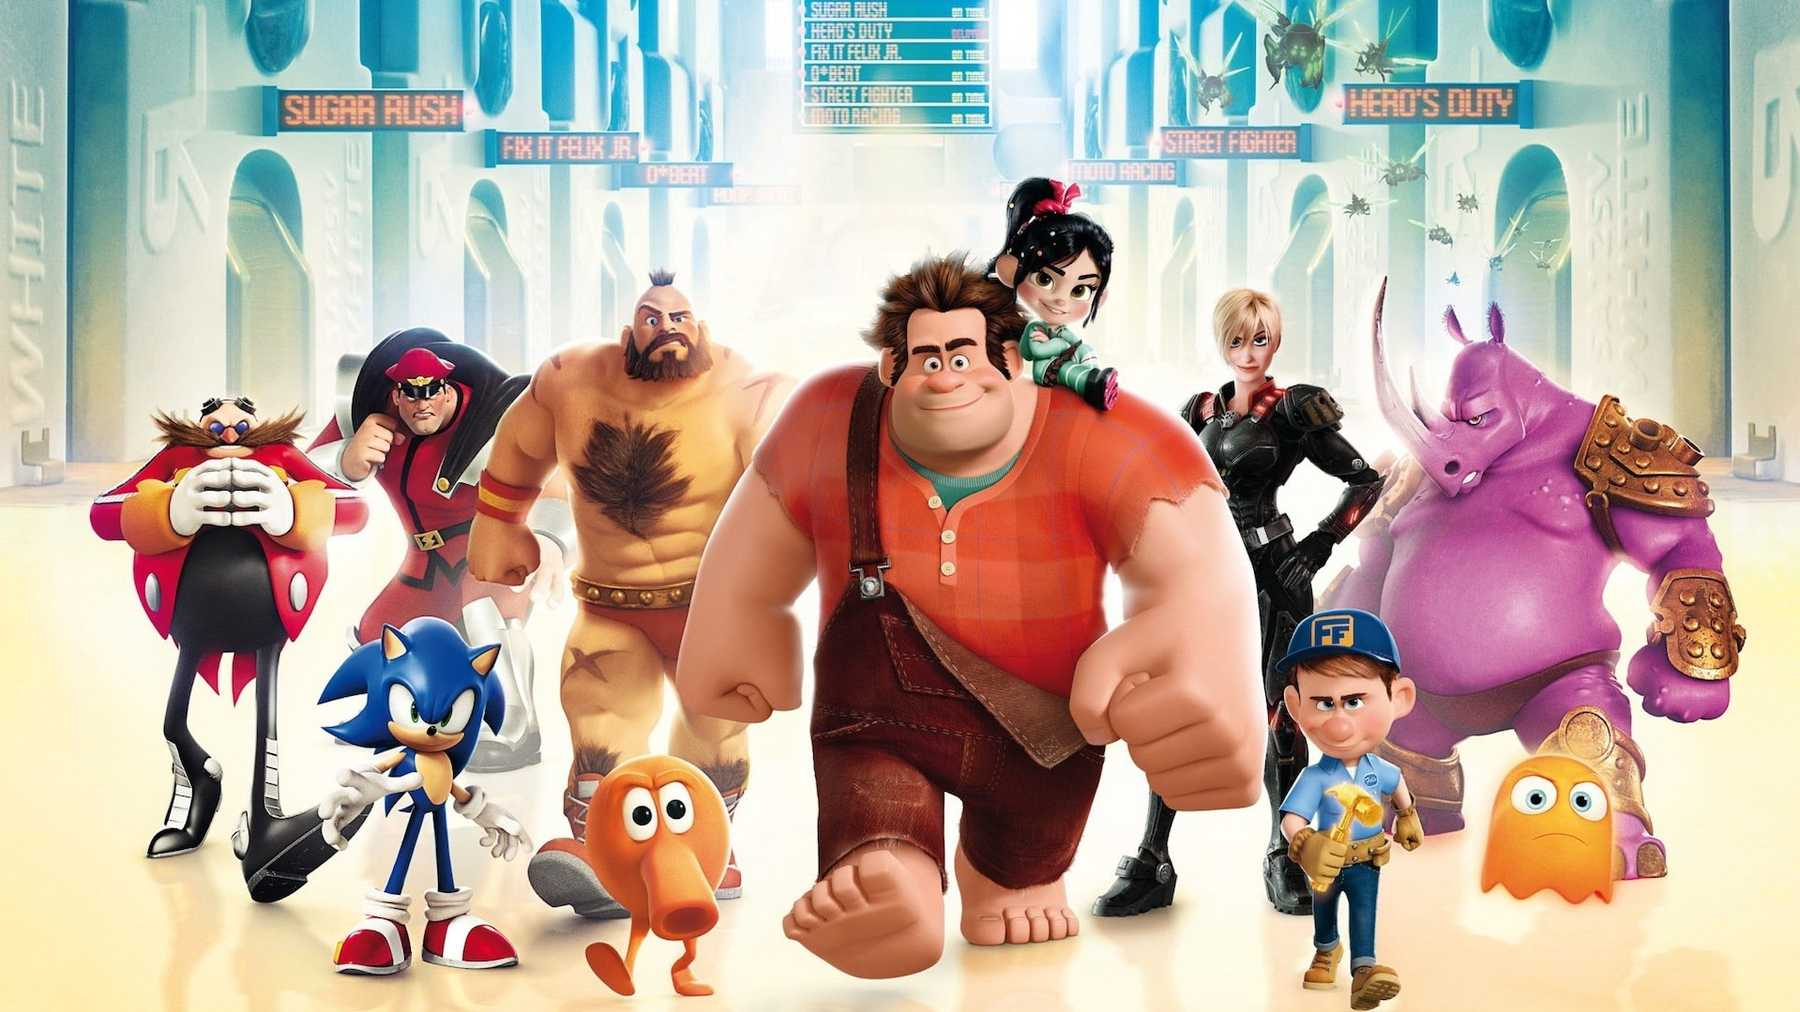 Anon's Pie Adventure 10 video game cameos we want to see in wreck-it ralph 2